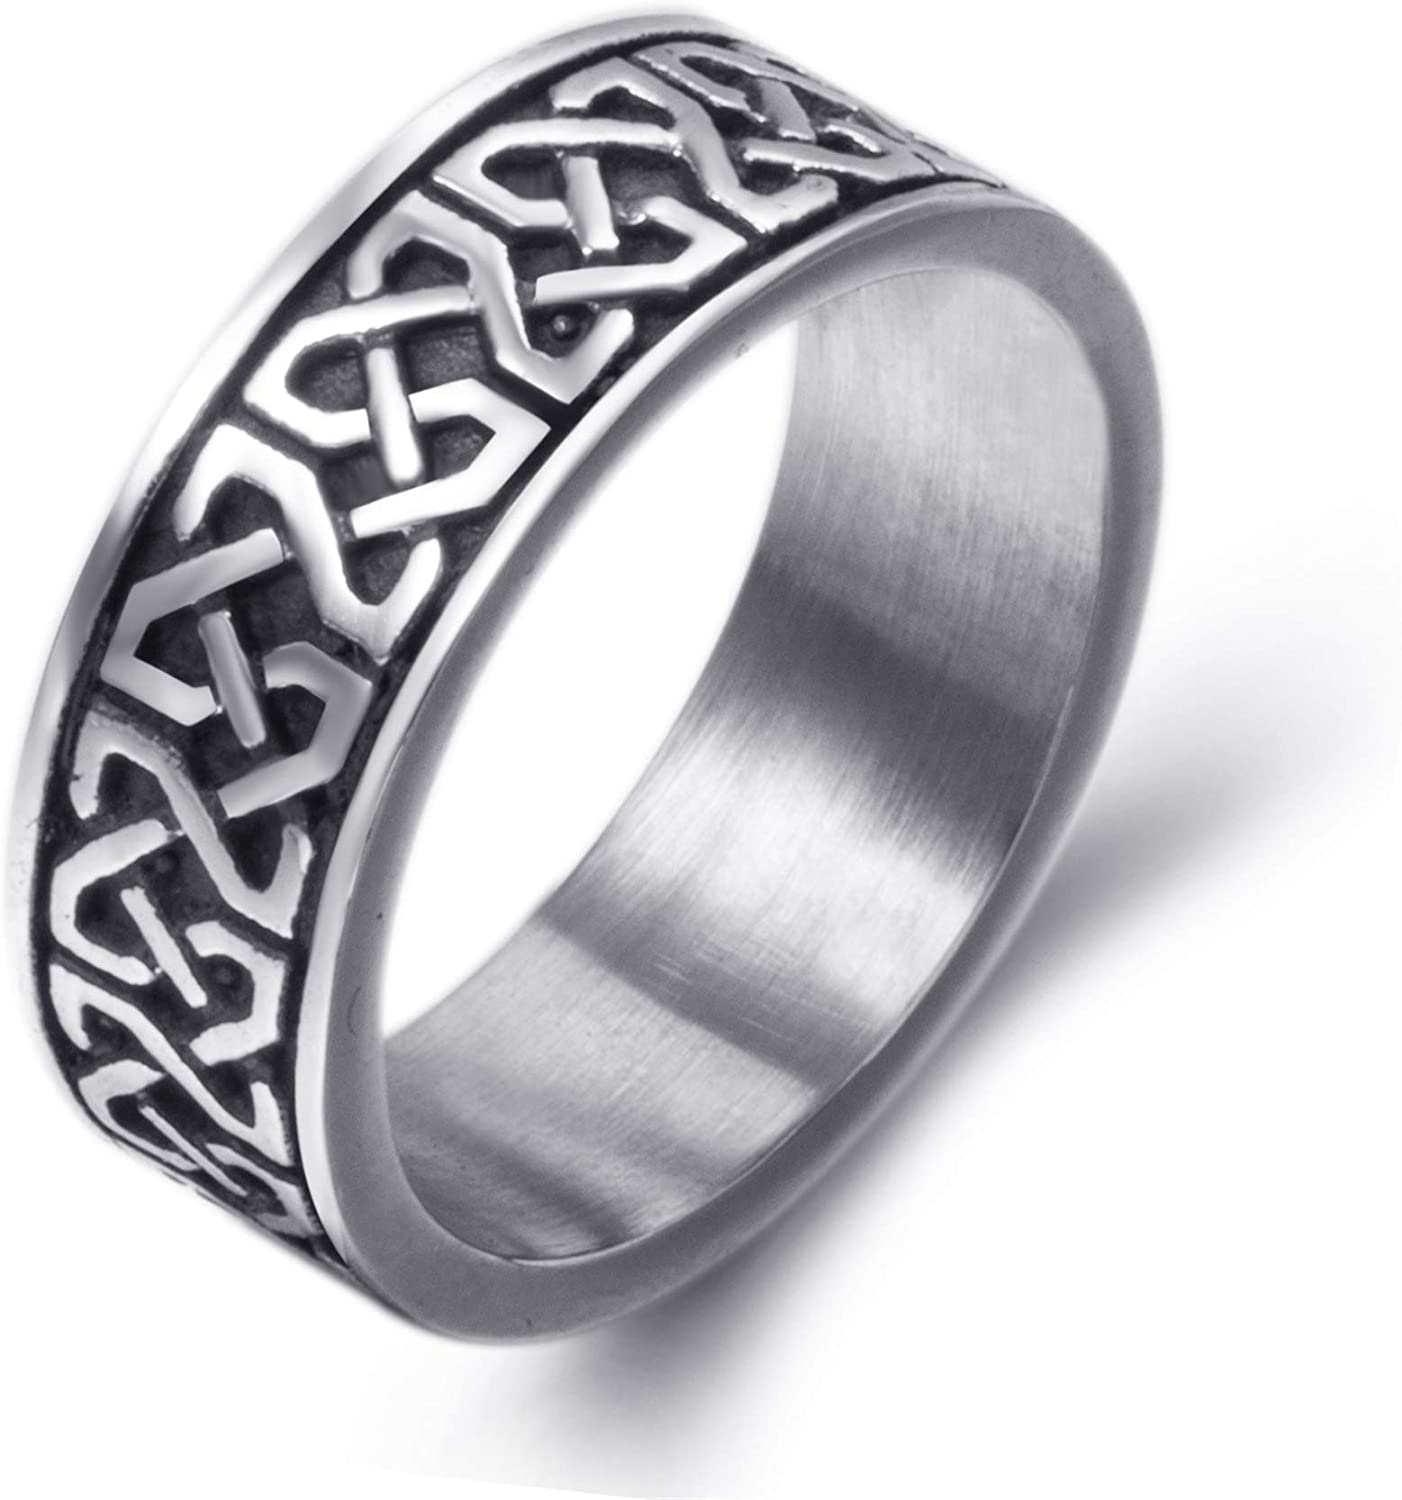 Elfasio 8mm Men Celtic Knot Stainless Steel Ring Band Vintage Jewelry US Size 8-15